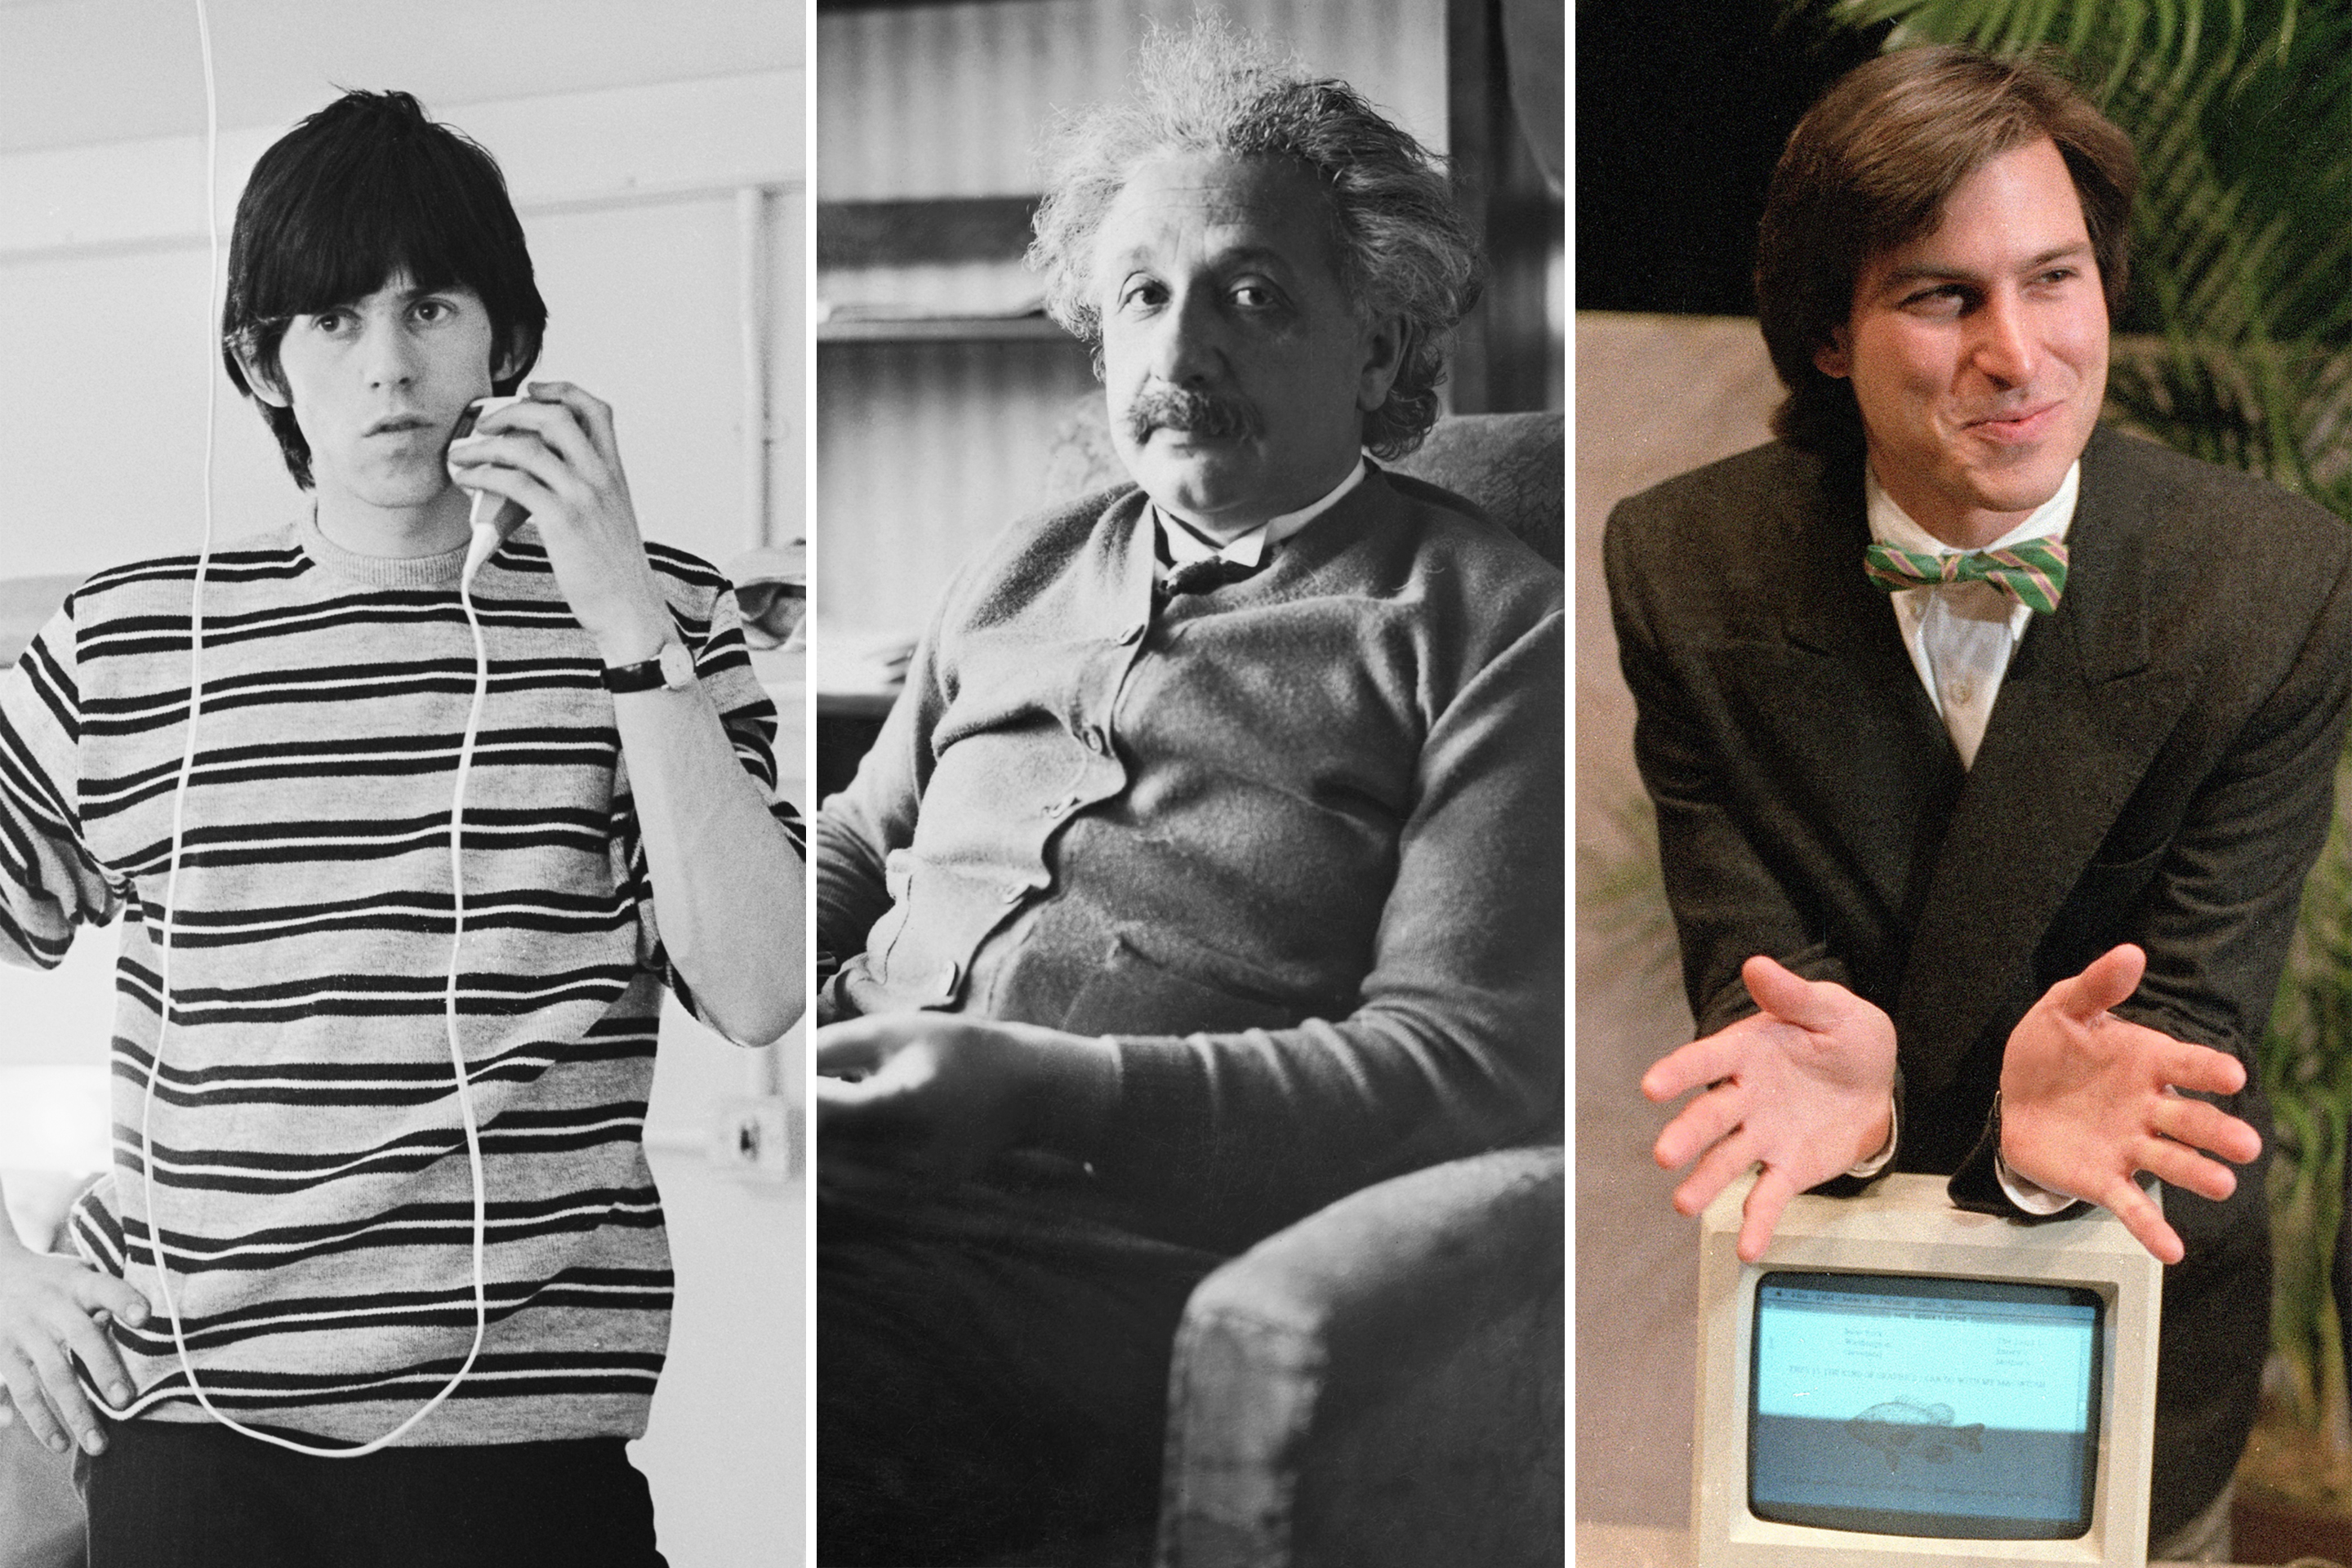 Left, Keith Richards, Albert Einstein, and Steve Jobs